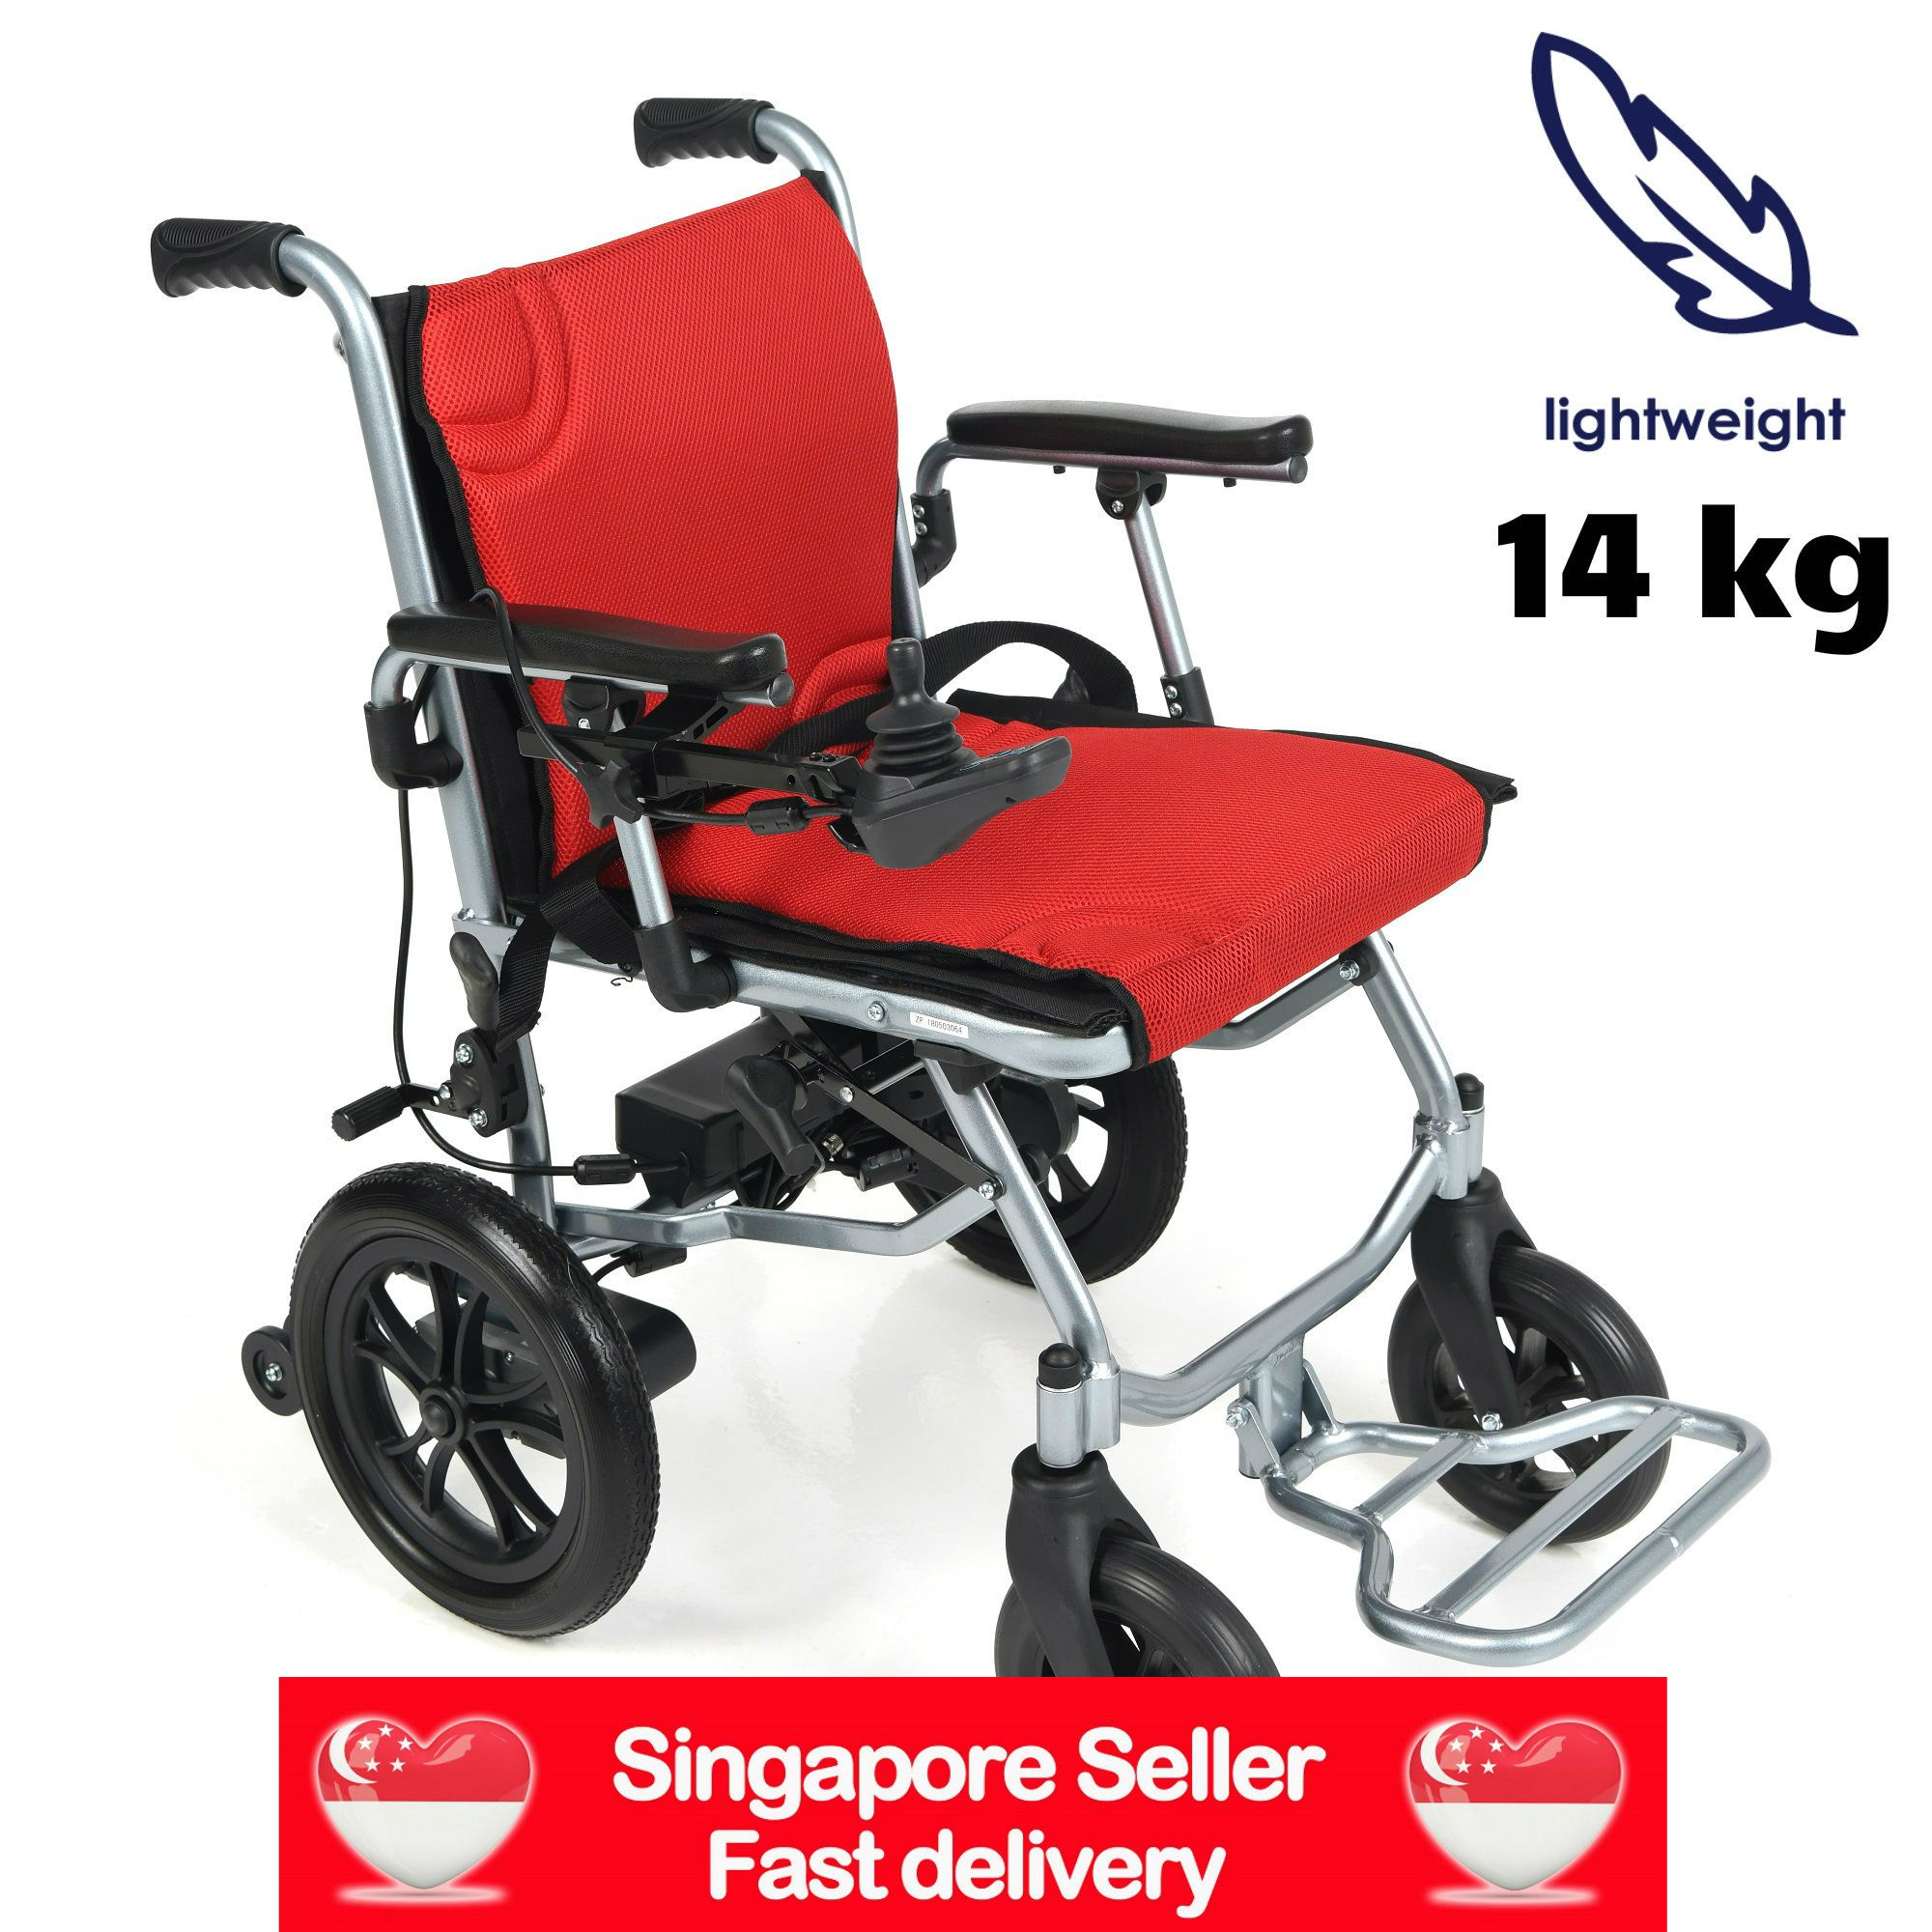 World's Lightest 14kg Electric Wheelchair, now available